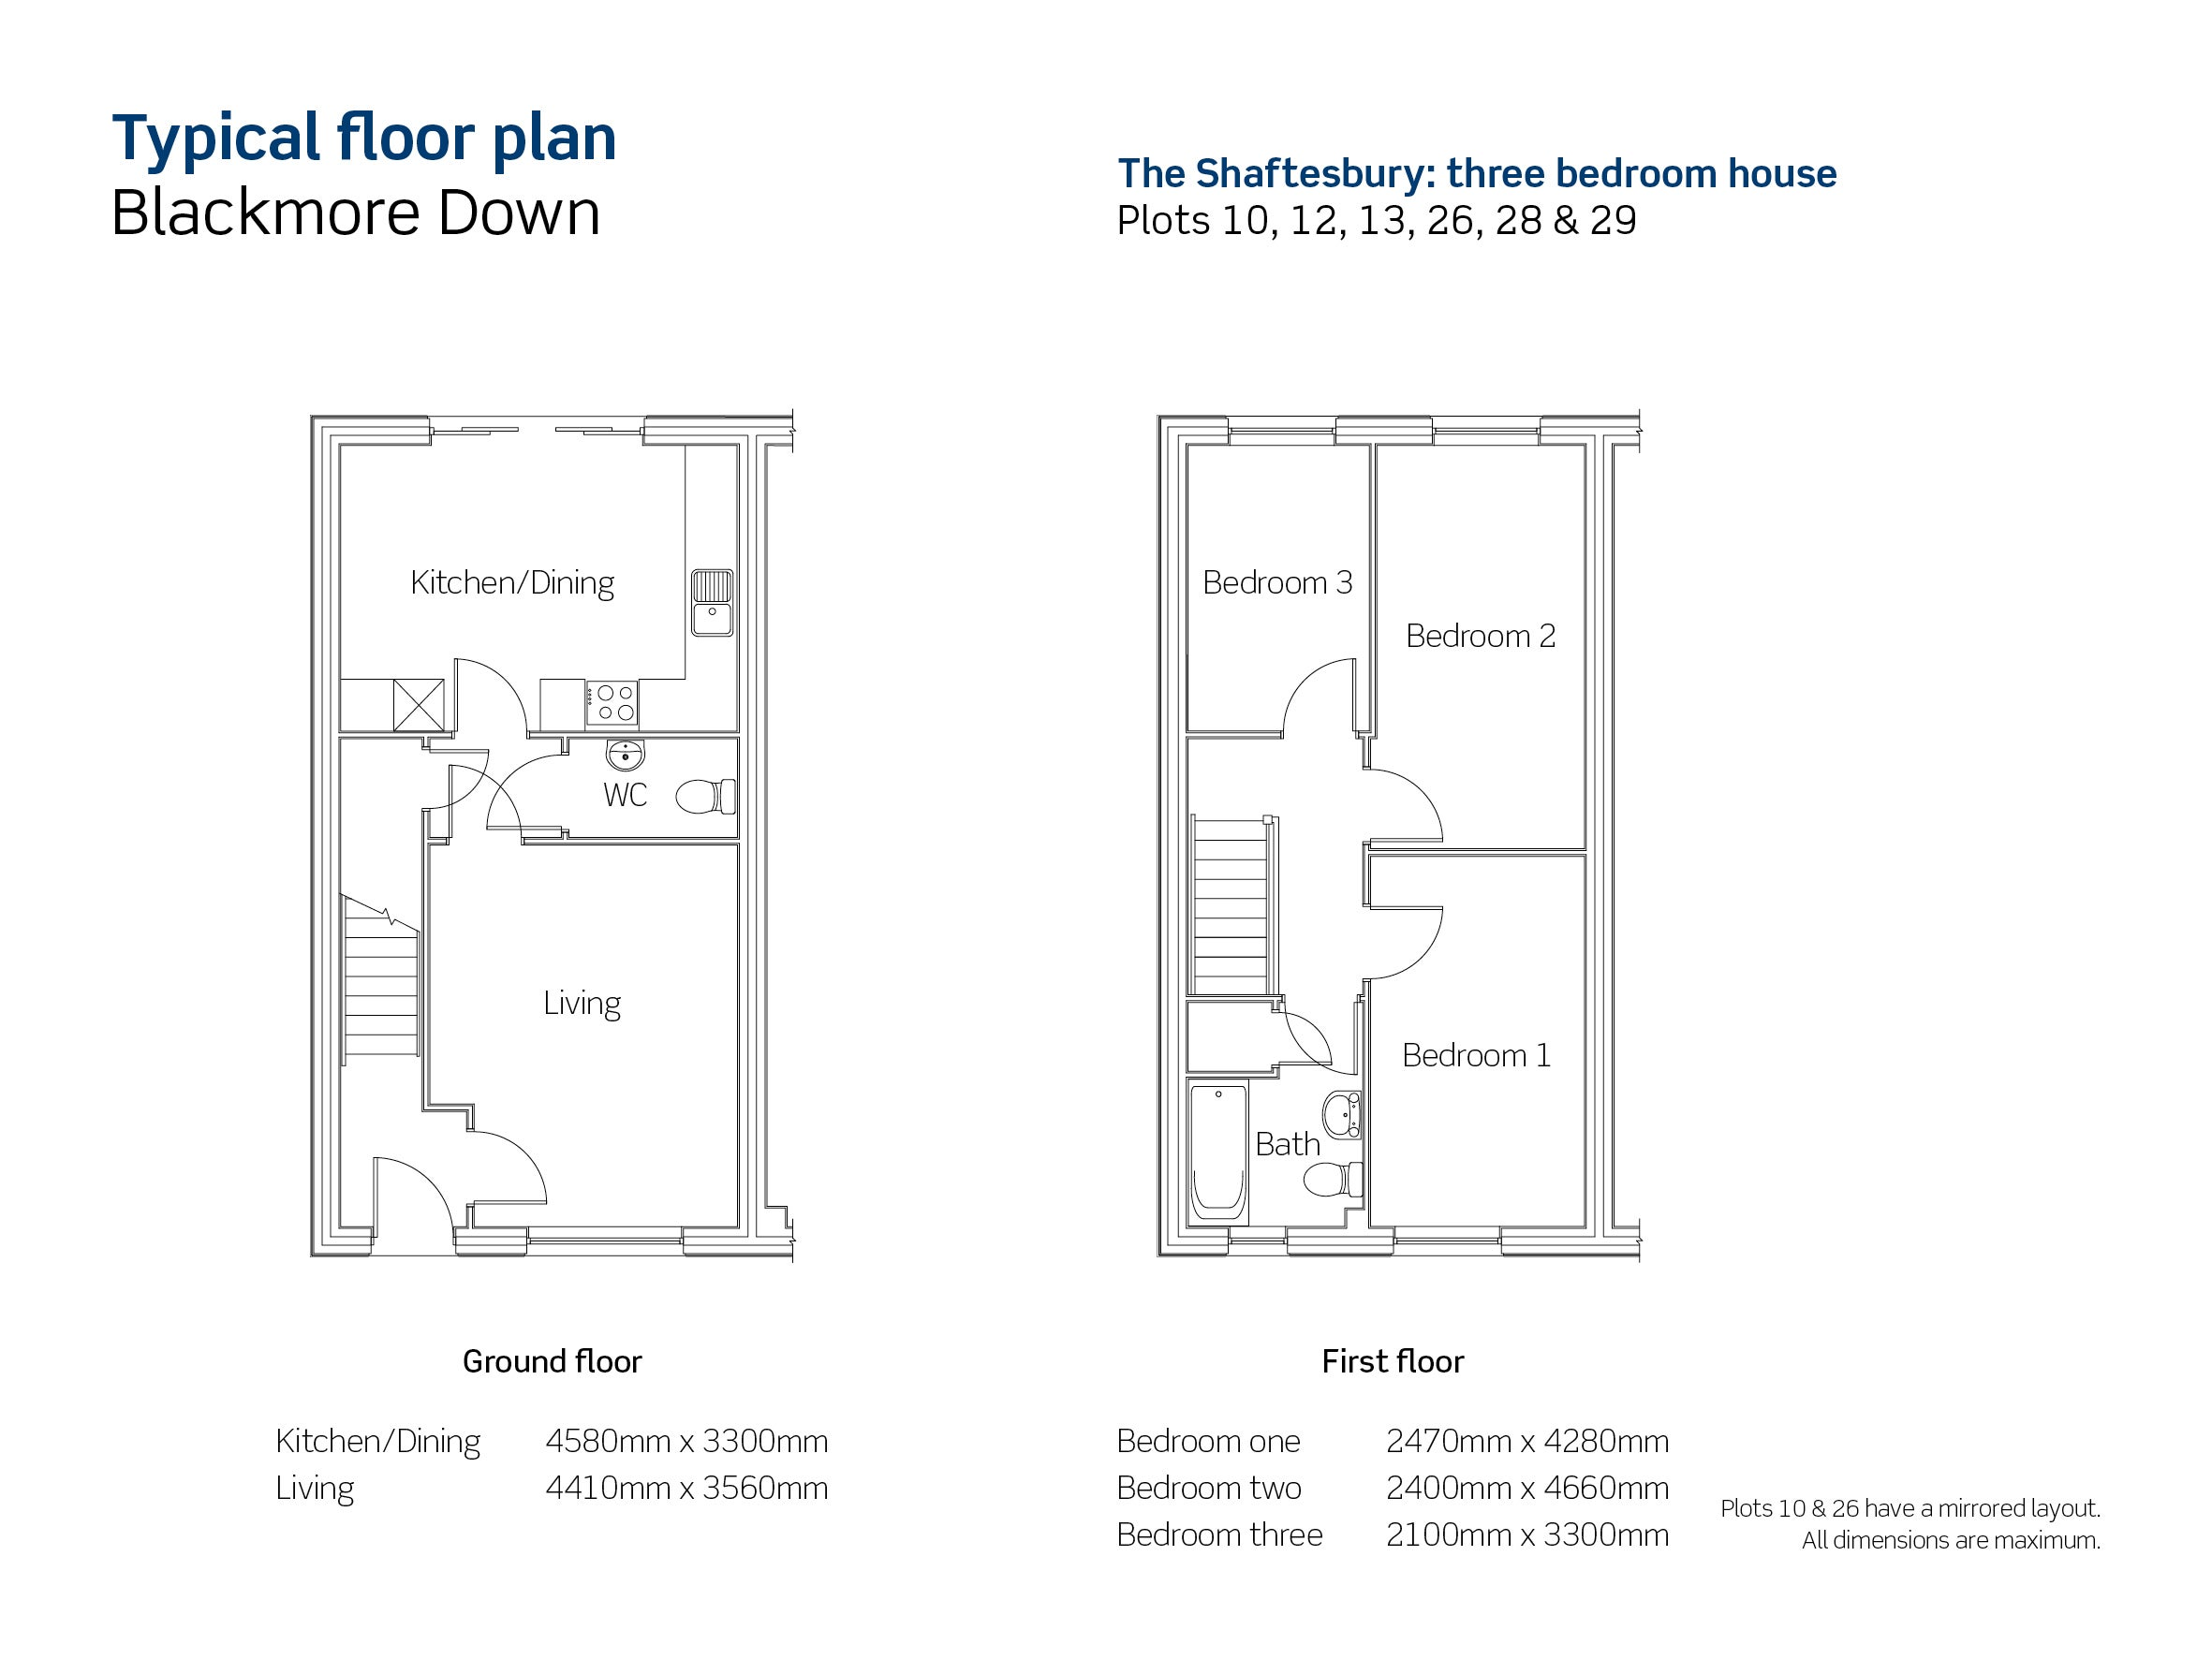 Drawing of Blackmore Down The Shaftesbury floor plan